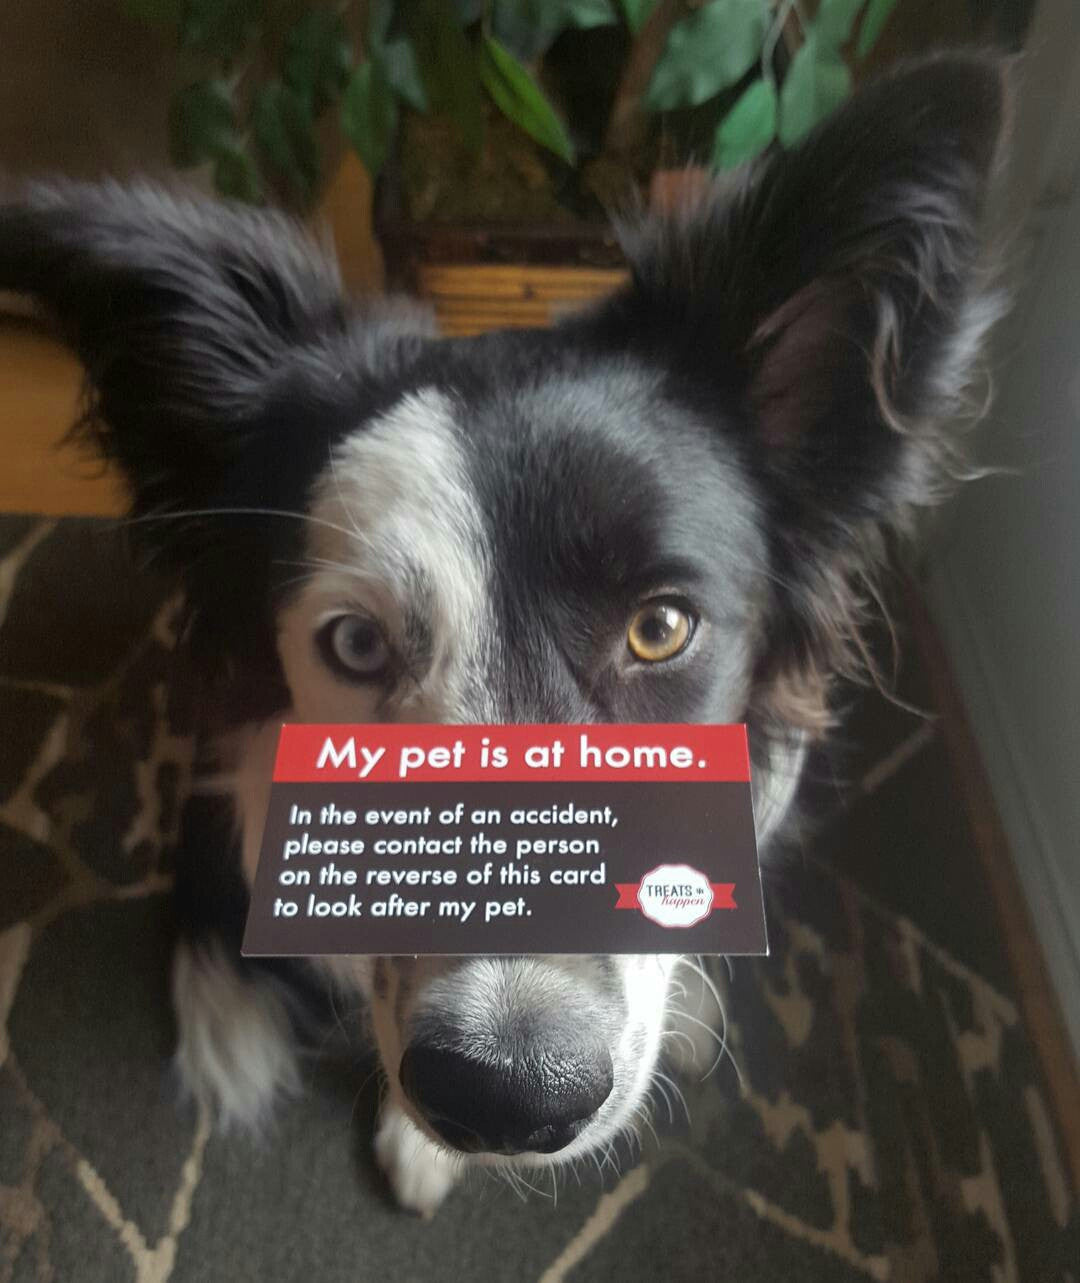 Pet inside Sticker and Pet at home Wallet card